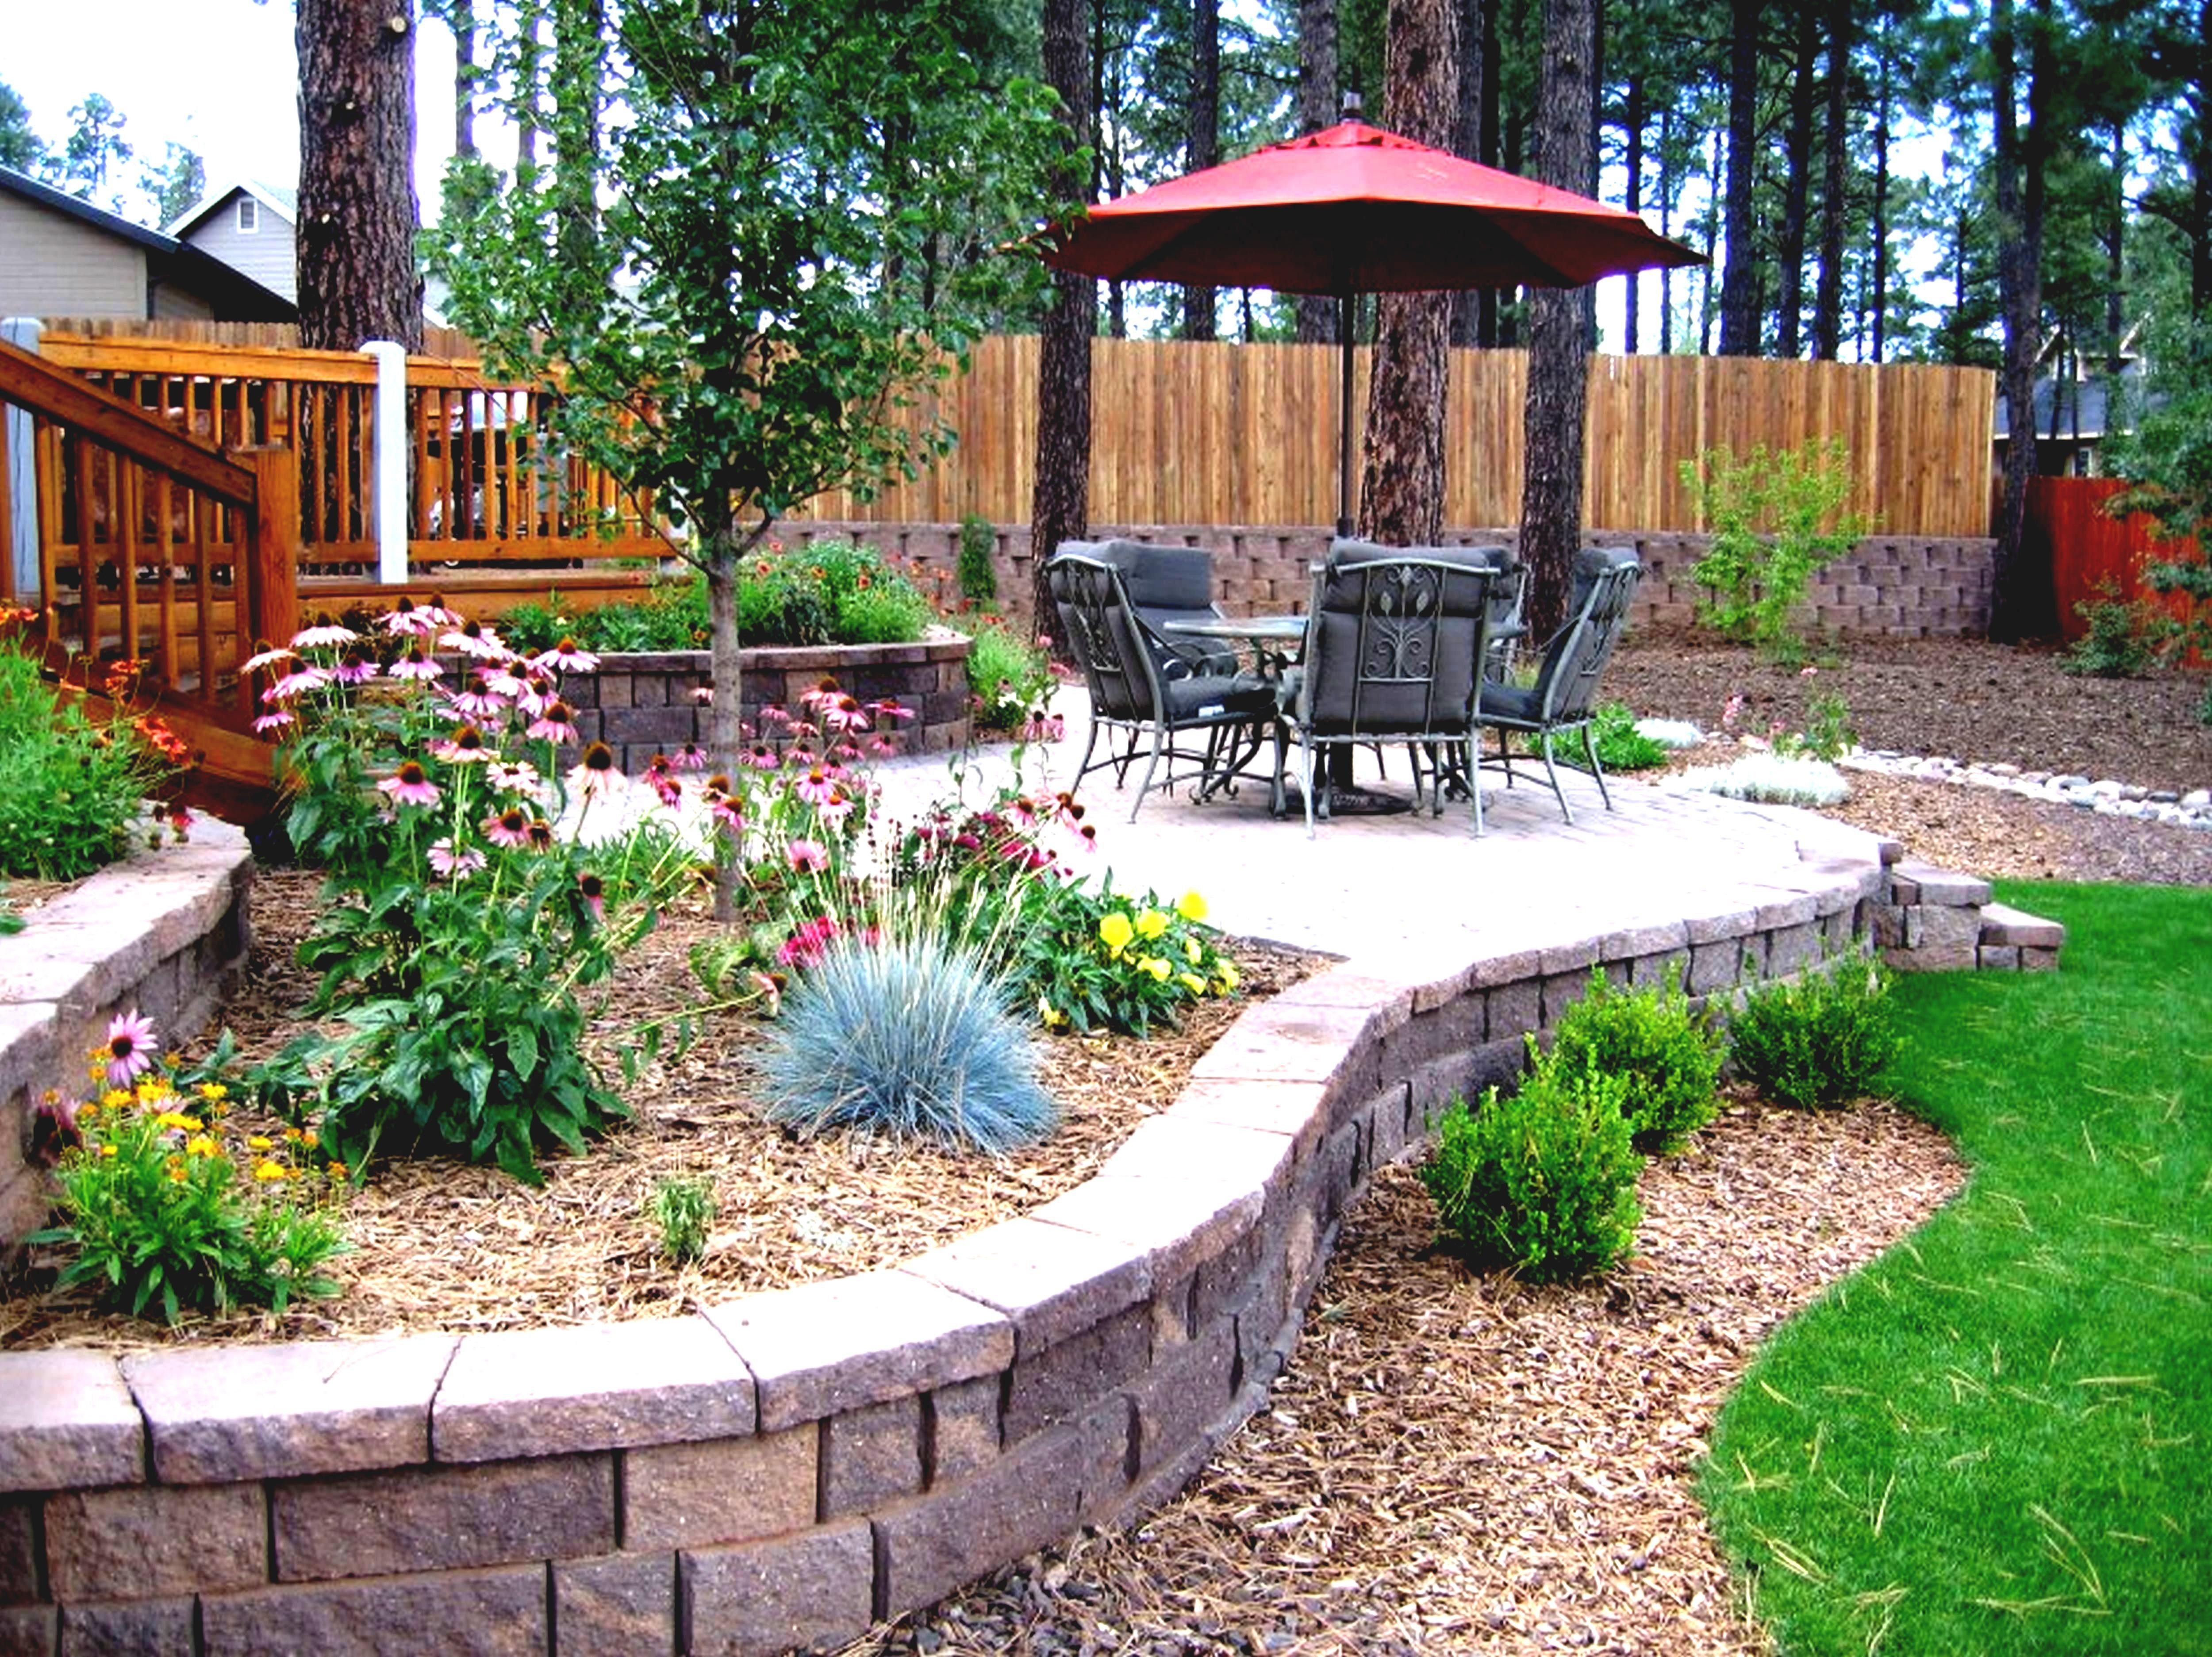 12 Low Cost Backyard Ideas Most Of The Nicest And Also Refined Too intended for Backyard Landscaping Cost